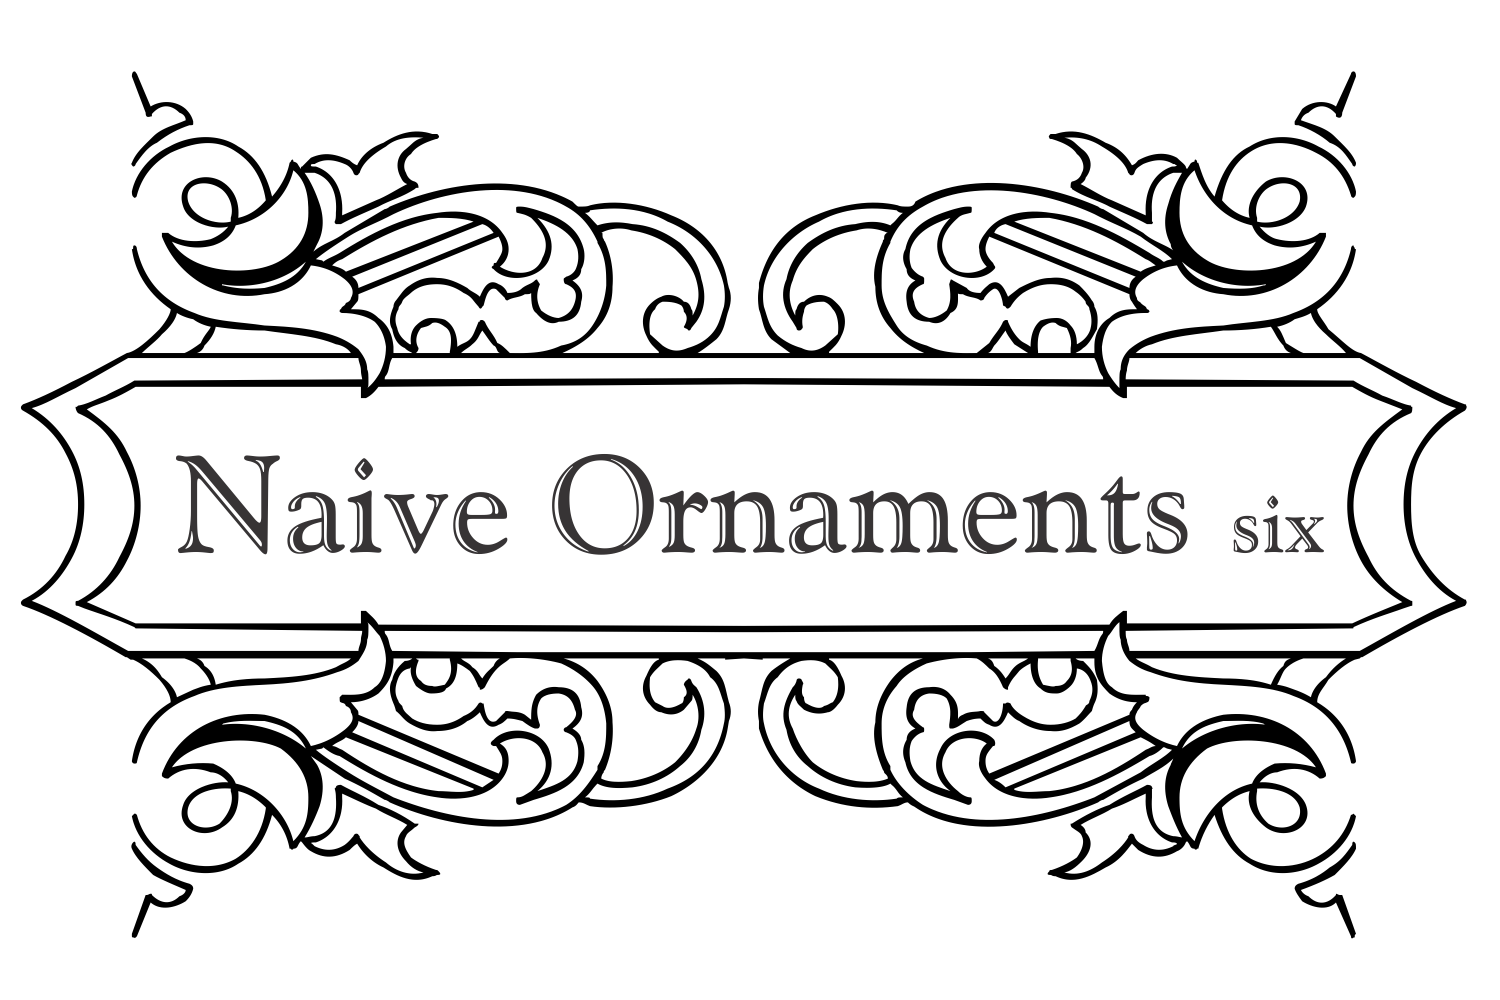 Naive Ornaments Six example image 3